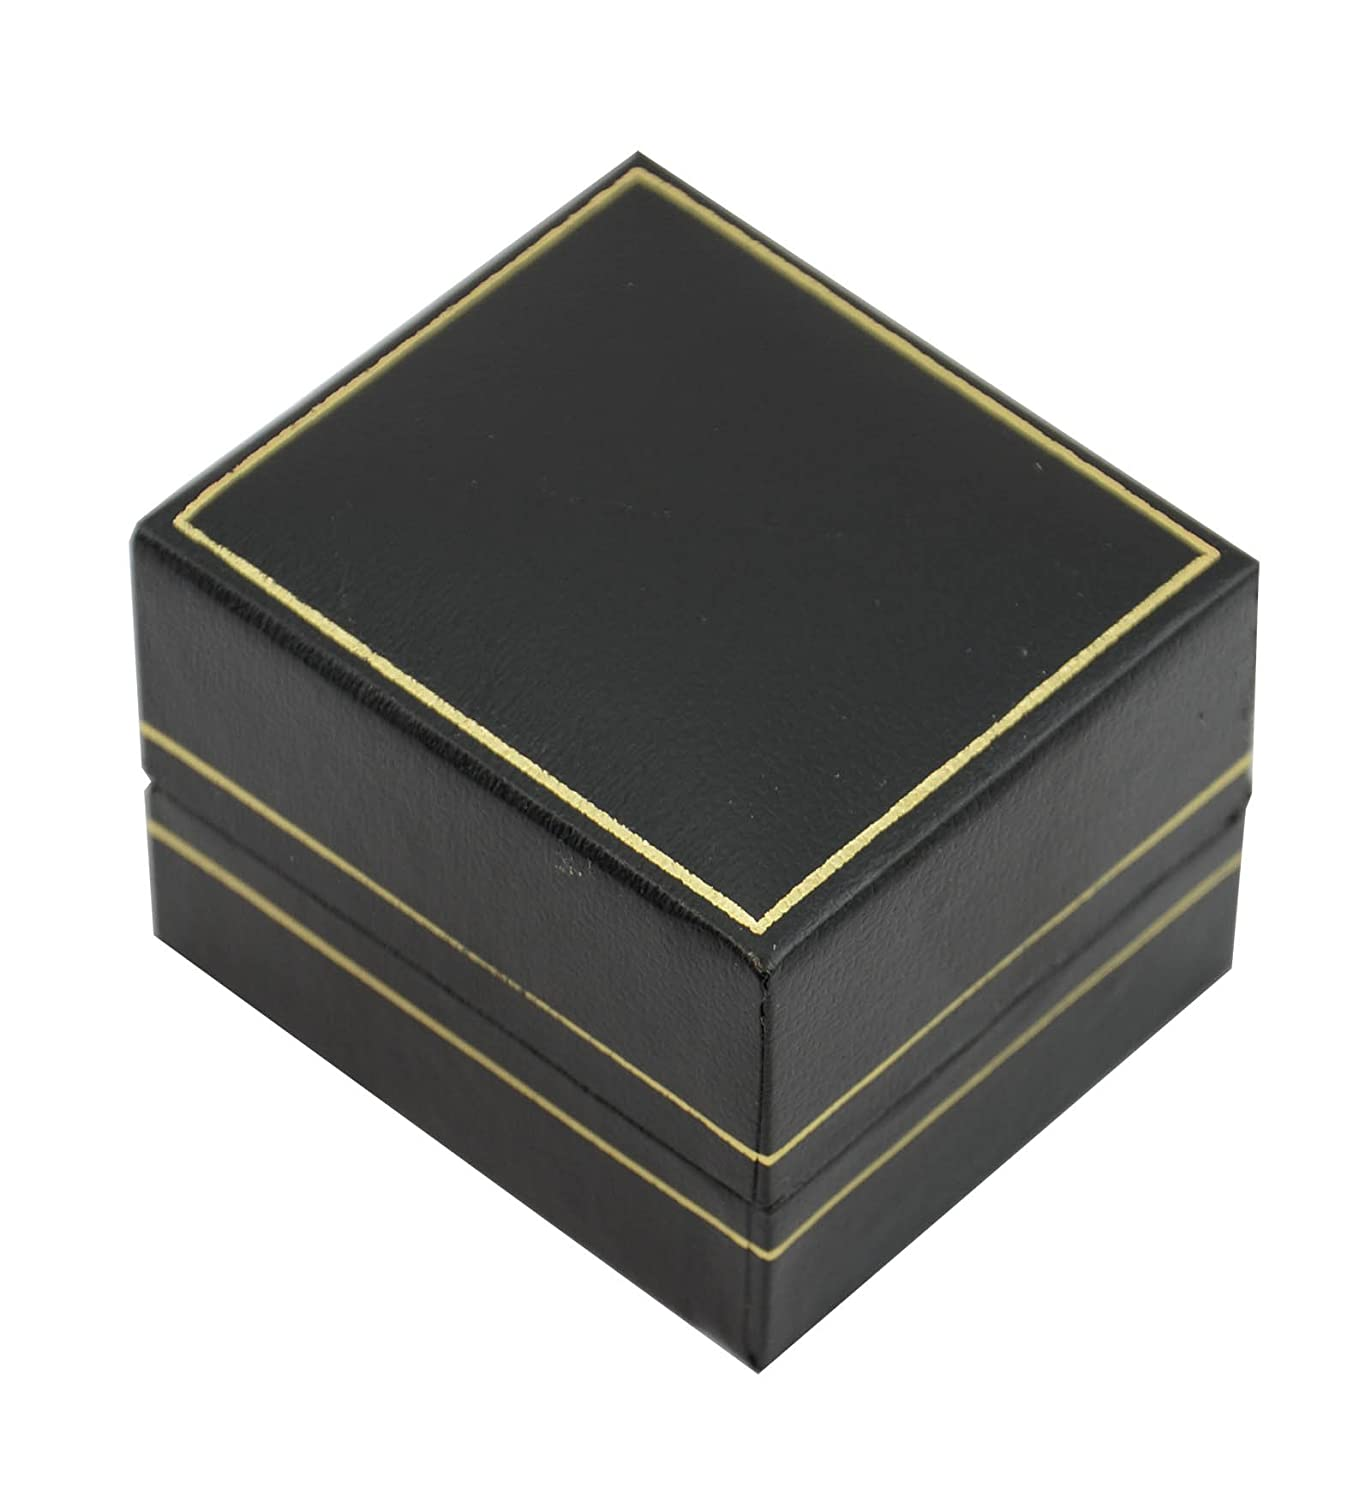 1 x STUNNING BLACK LEATHERETTE RING BOX WITH VELVET INSERT & GOLD TRIM BOX DISPLAYS® boxdisplays 162-1